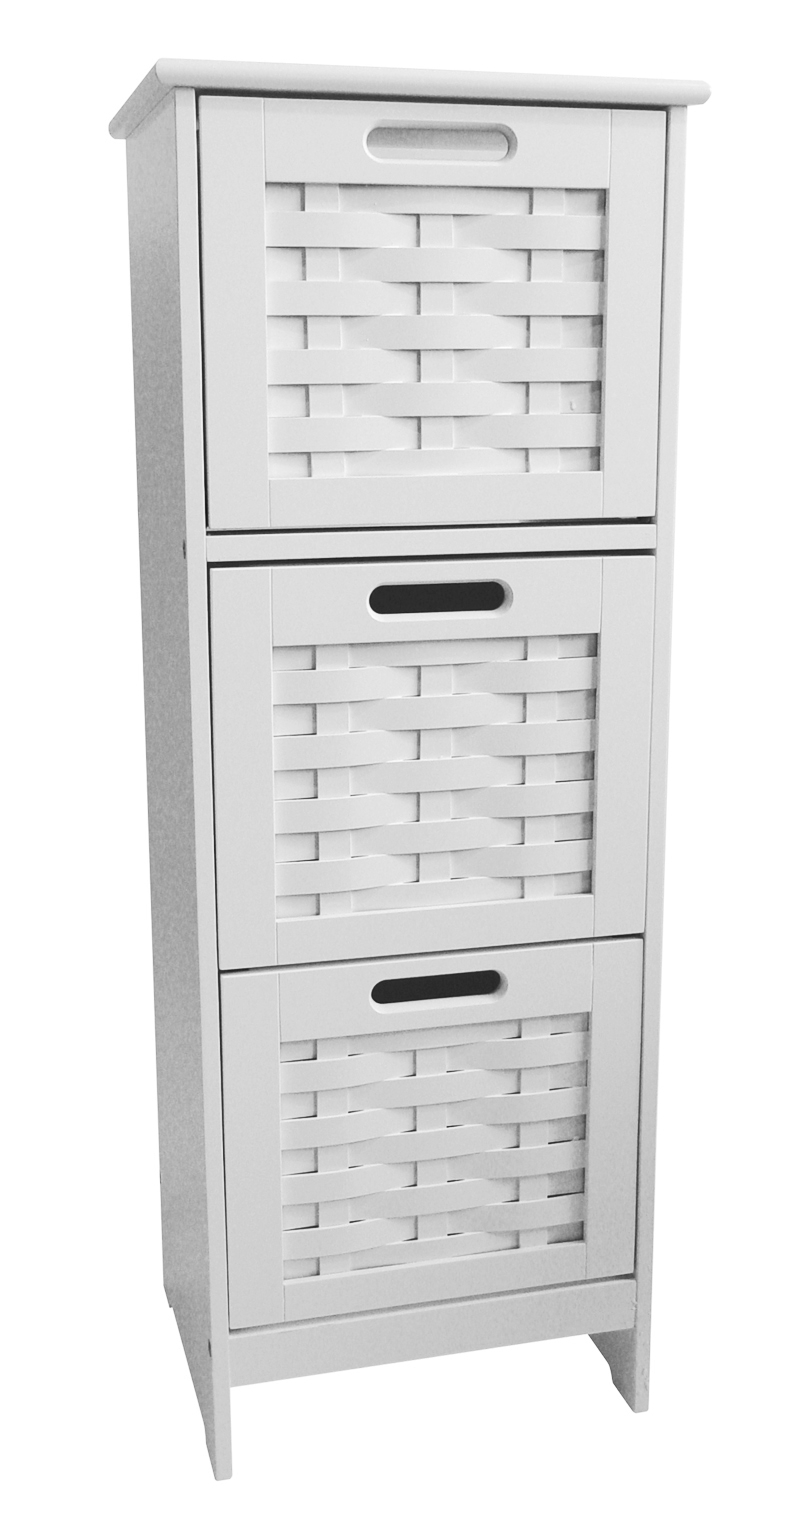 Details About 3 Drawer Slim Weave Storage Unit Bathroom Storage Cabinet White with regard to sizing 787 X 1527